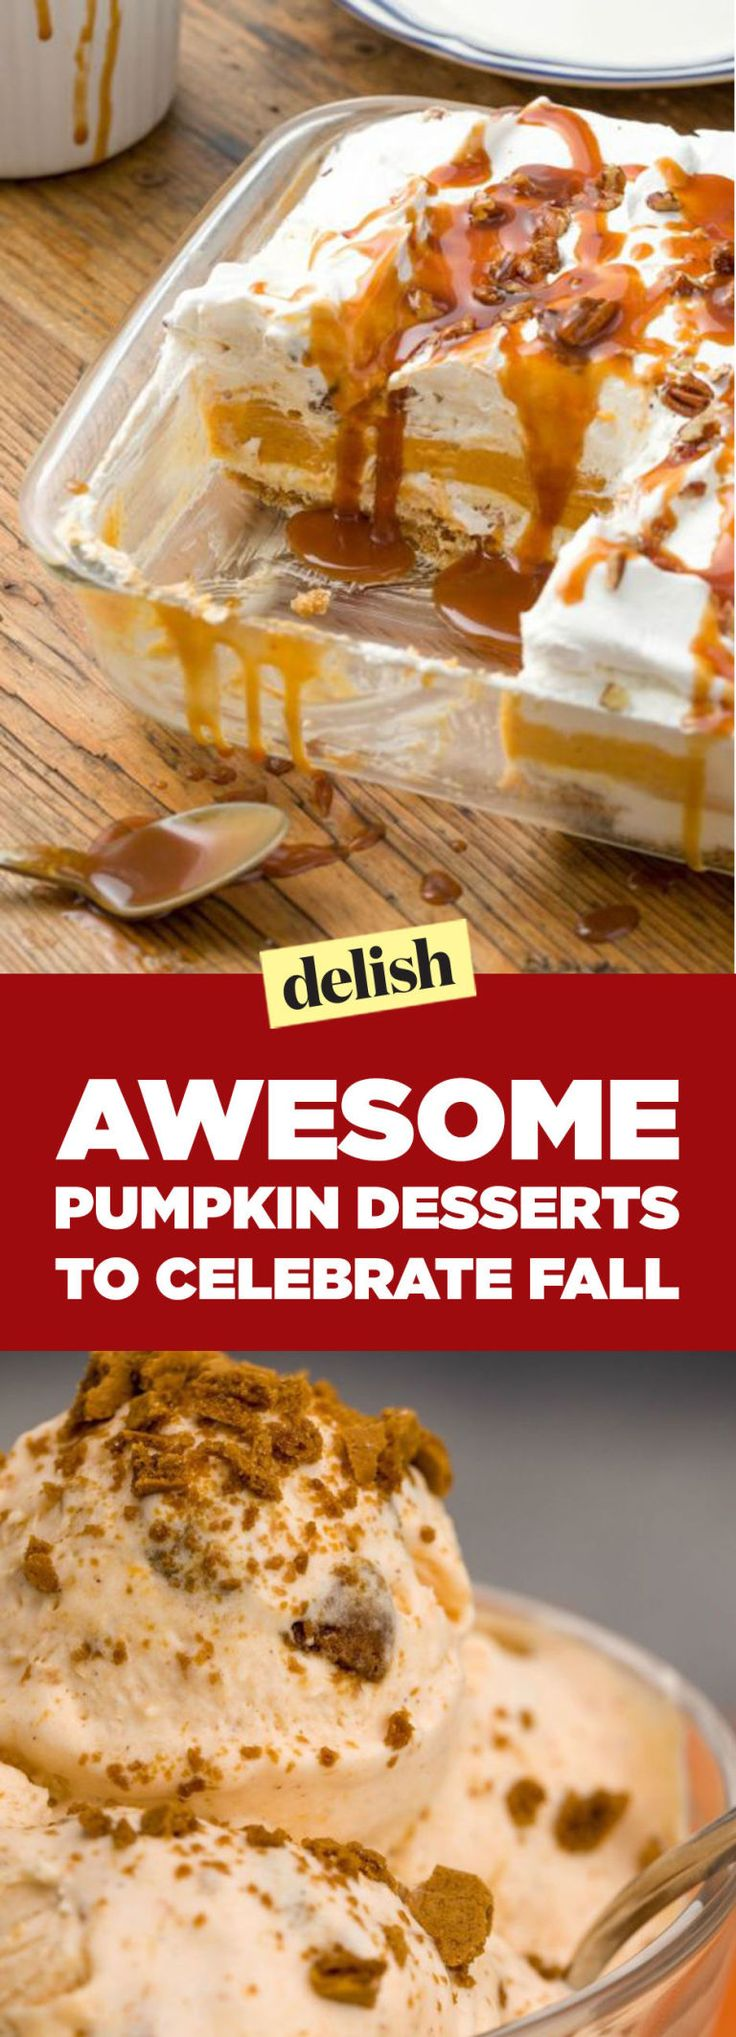 48 Easy Pumpkin Desserts To Celebrate Fall